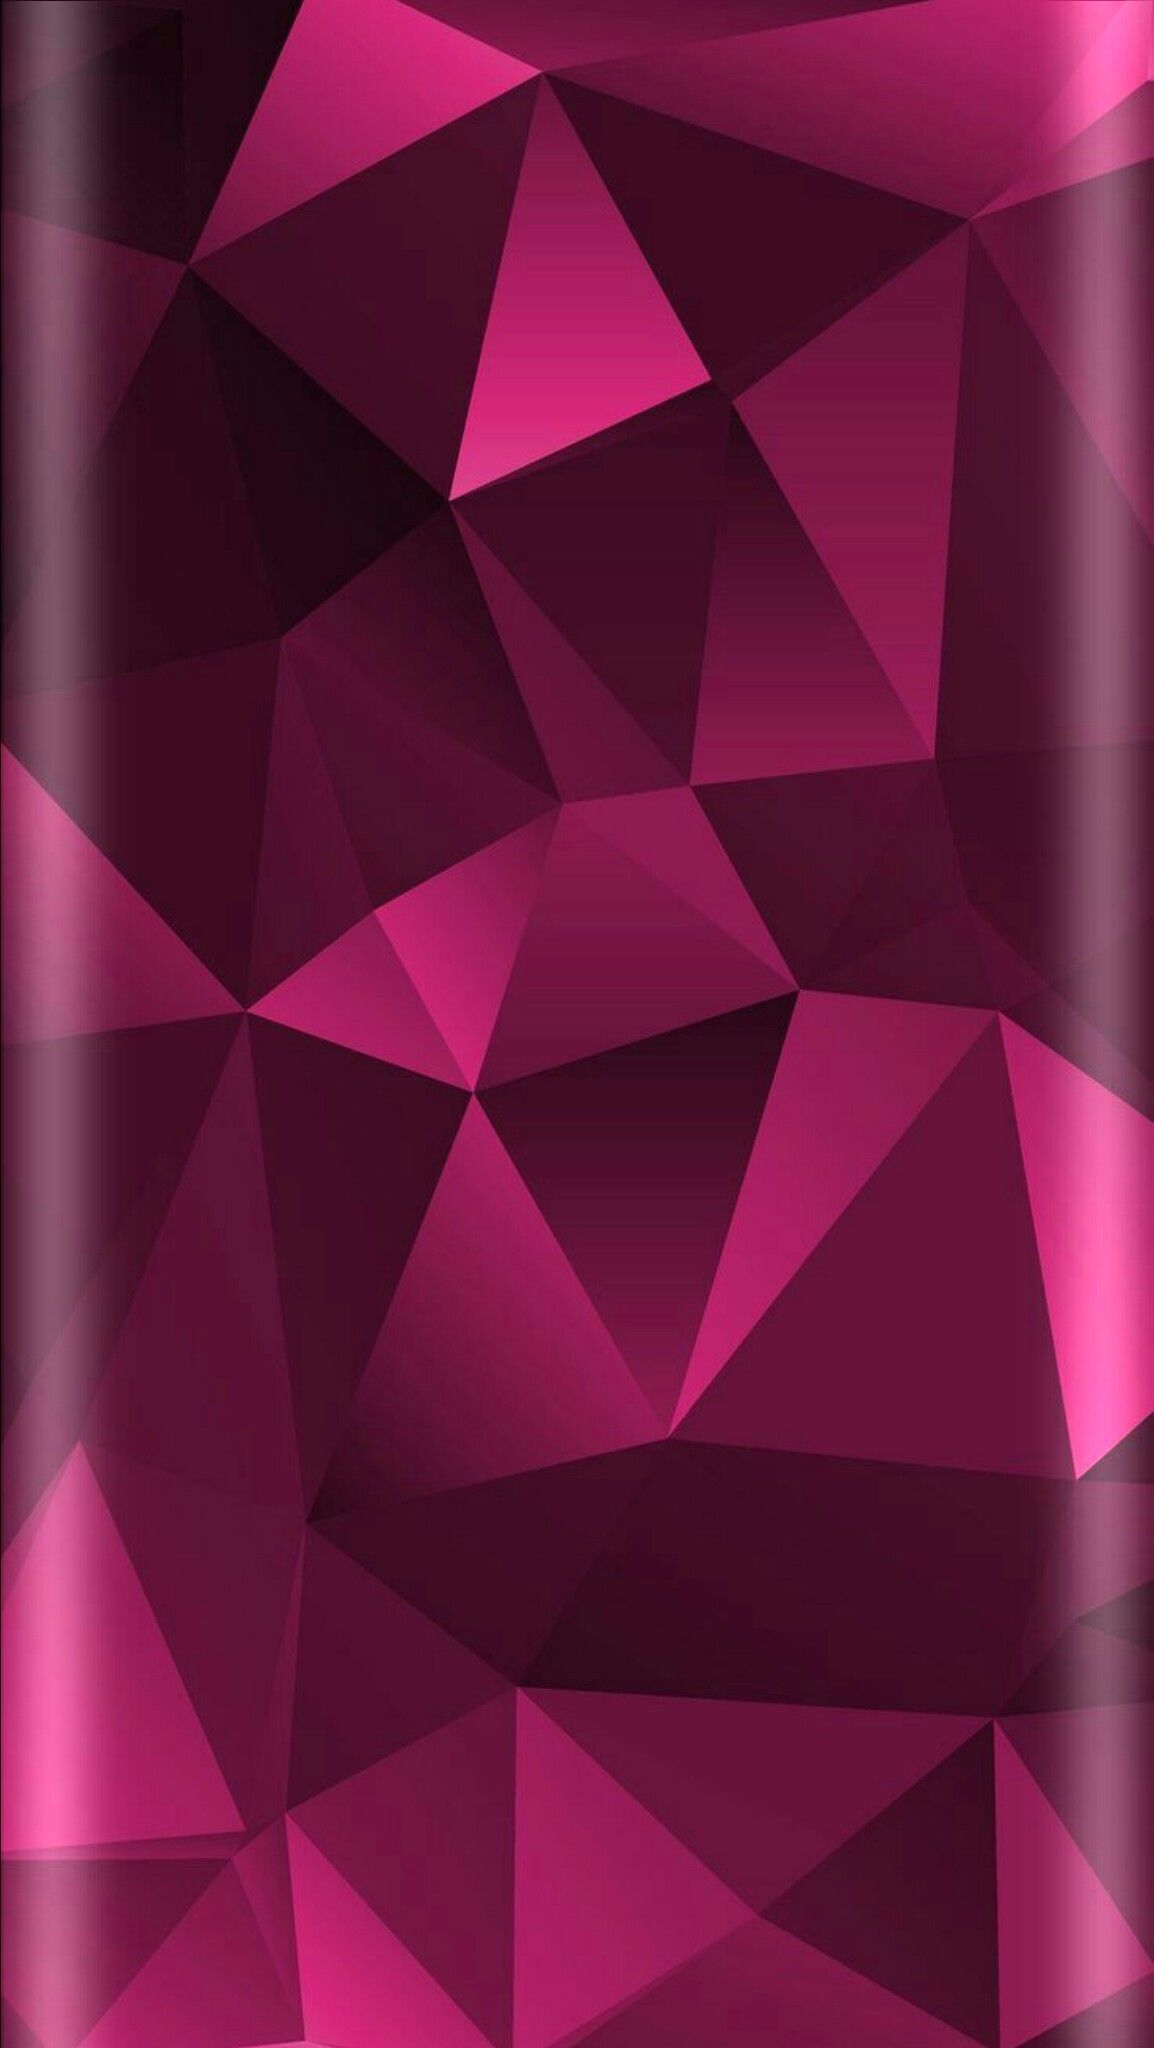 1154x2048 Pink Geometric Abstract Wallpaper | *Pink and Flowers ...